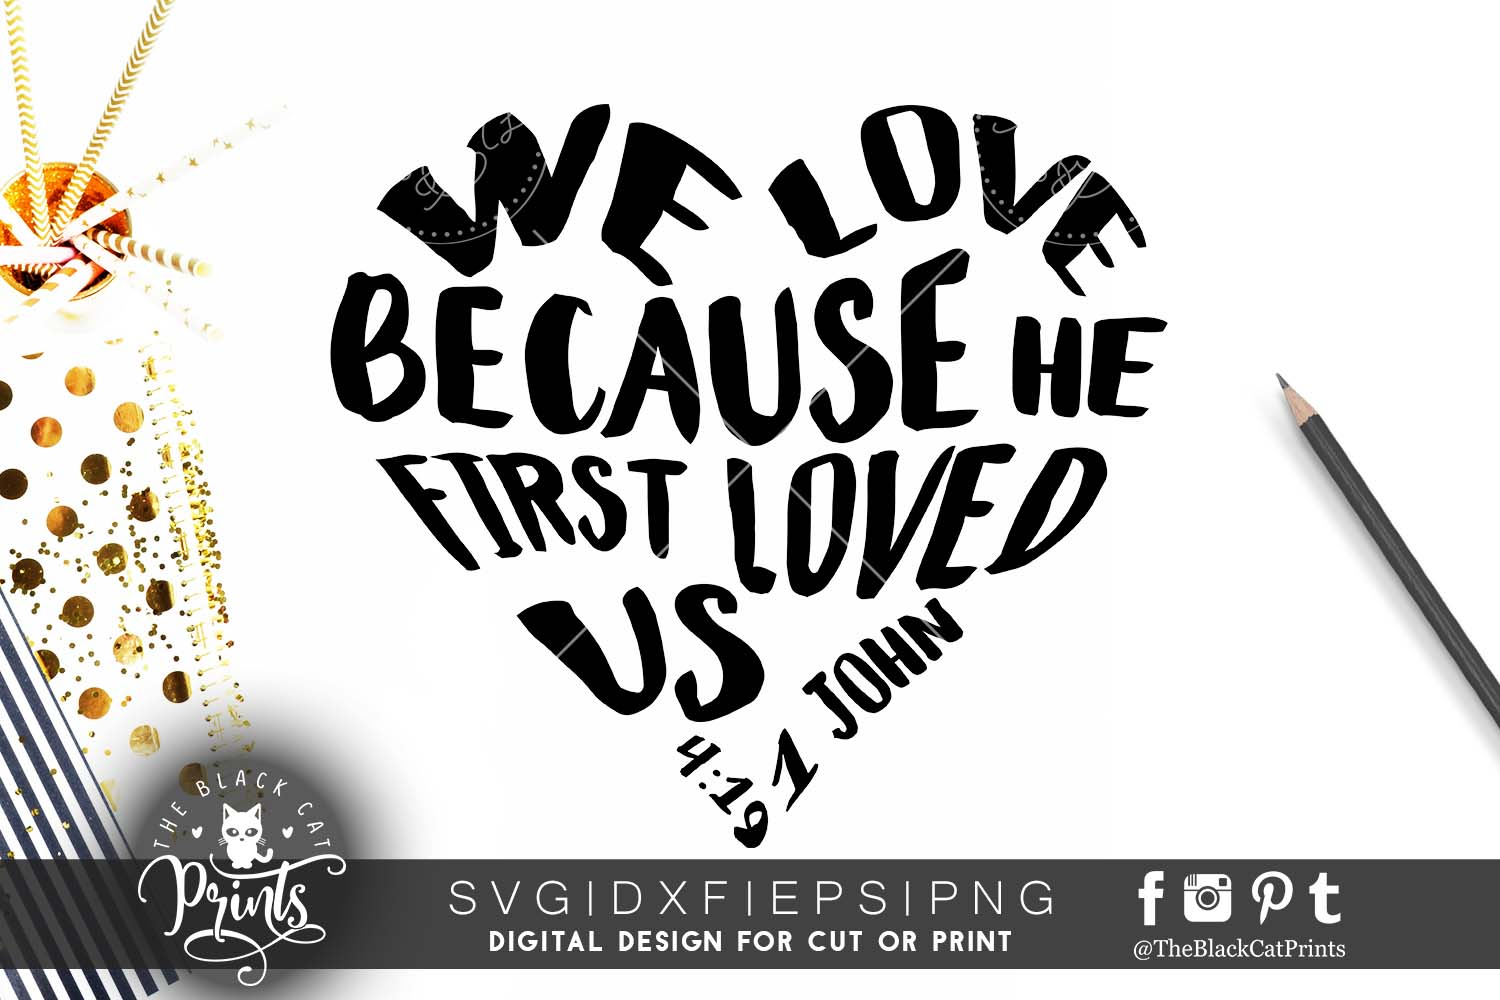 We Love because he first loved us SVG PNG EPS DXF example image 1